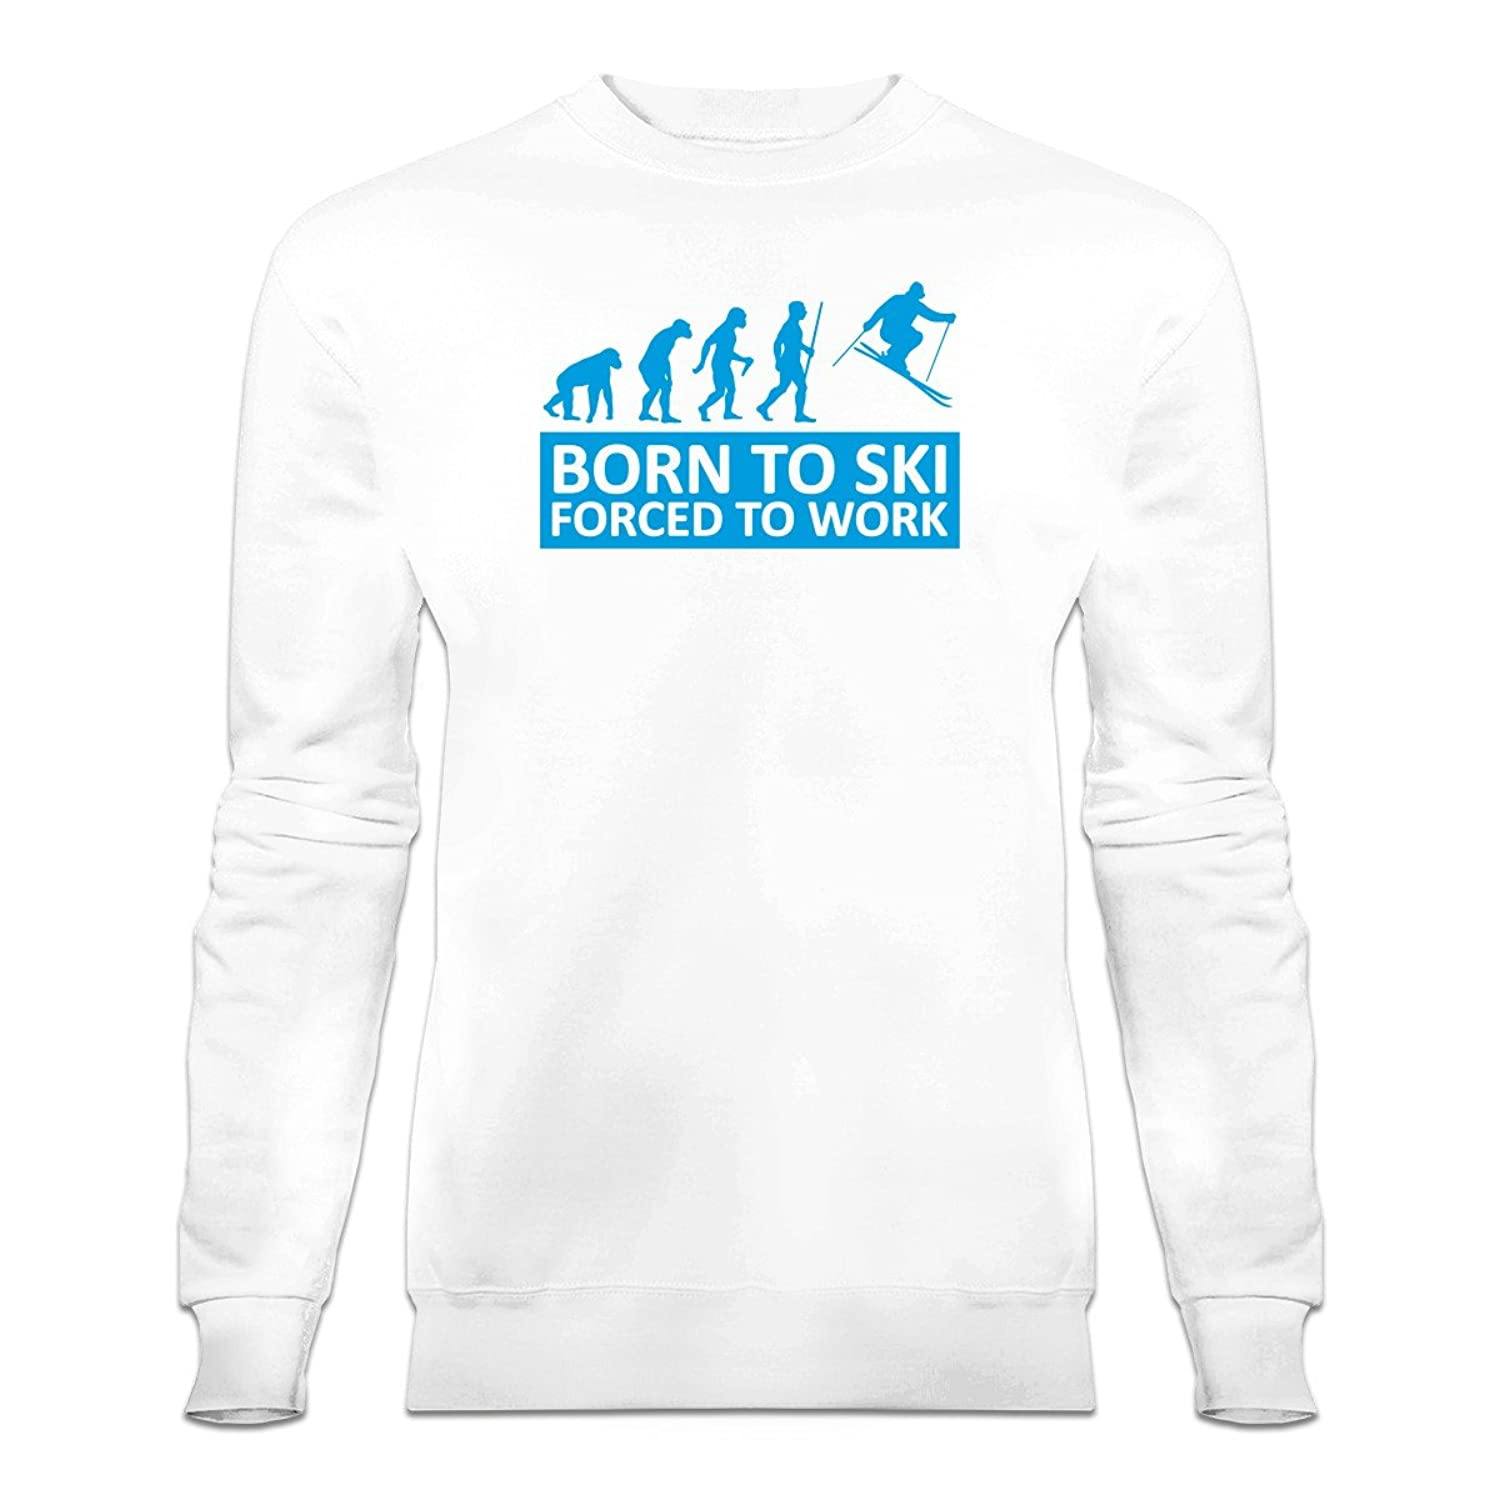 Born To Ski Forced To Work Sweatshirt by Shirtcity